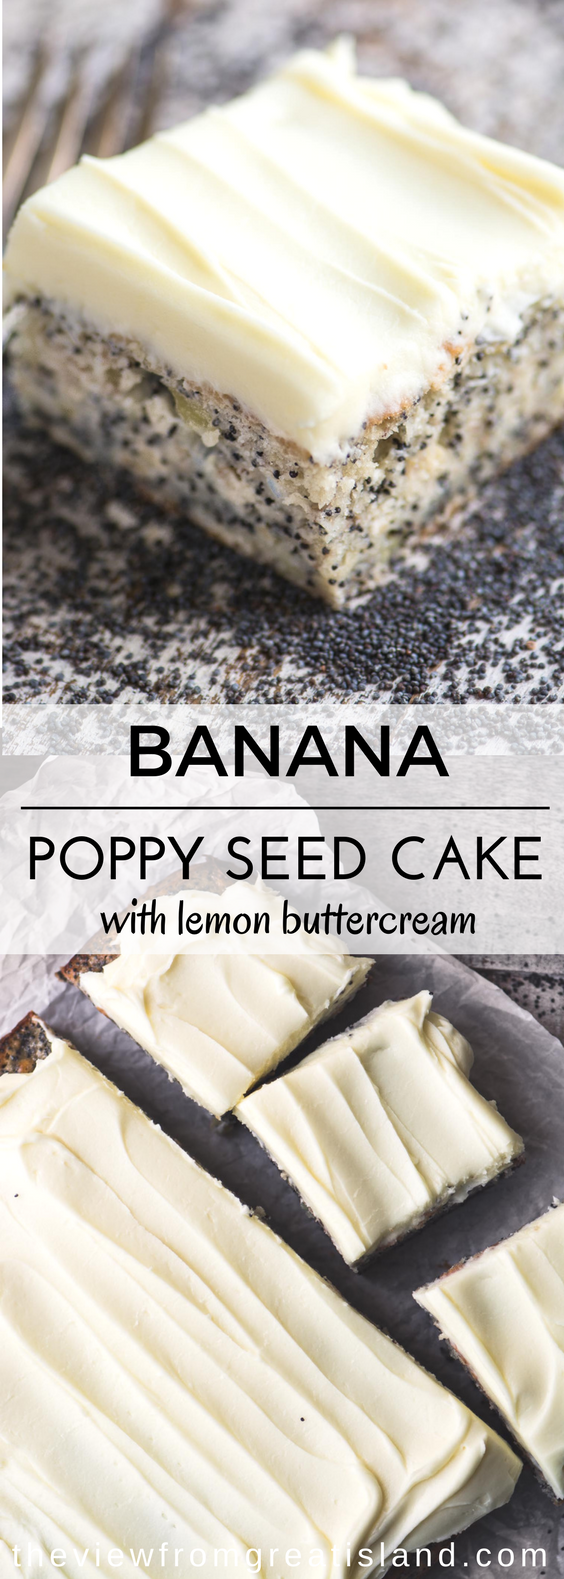 Banana Poppy Seed Cake with Lemon Buttercream ~ an easy snack cake made with bananas and poppy seeds, generoulsy topped with a lemon frosting ~ you can whip up this easy one bowl cake in no time. #cake #blondies #snackcake #bananacake #poppyseeds #poppyseedcake #lemonfrosting #lemoncake #coffeecake #dessert #easybananacake #baking #onebowlcake